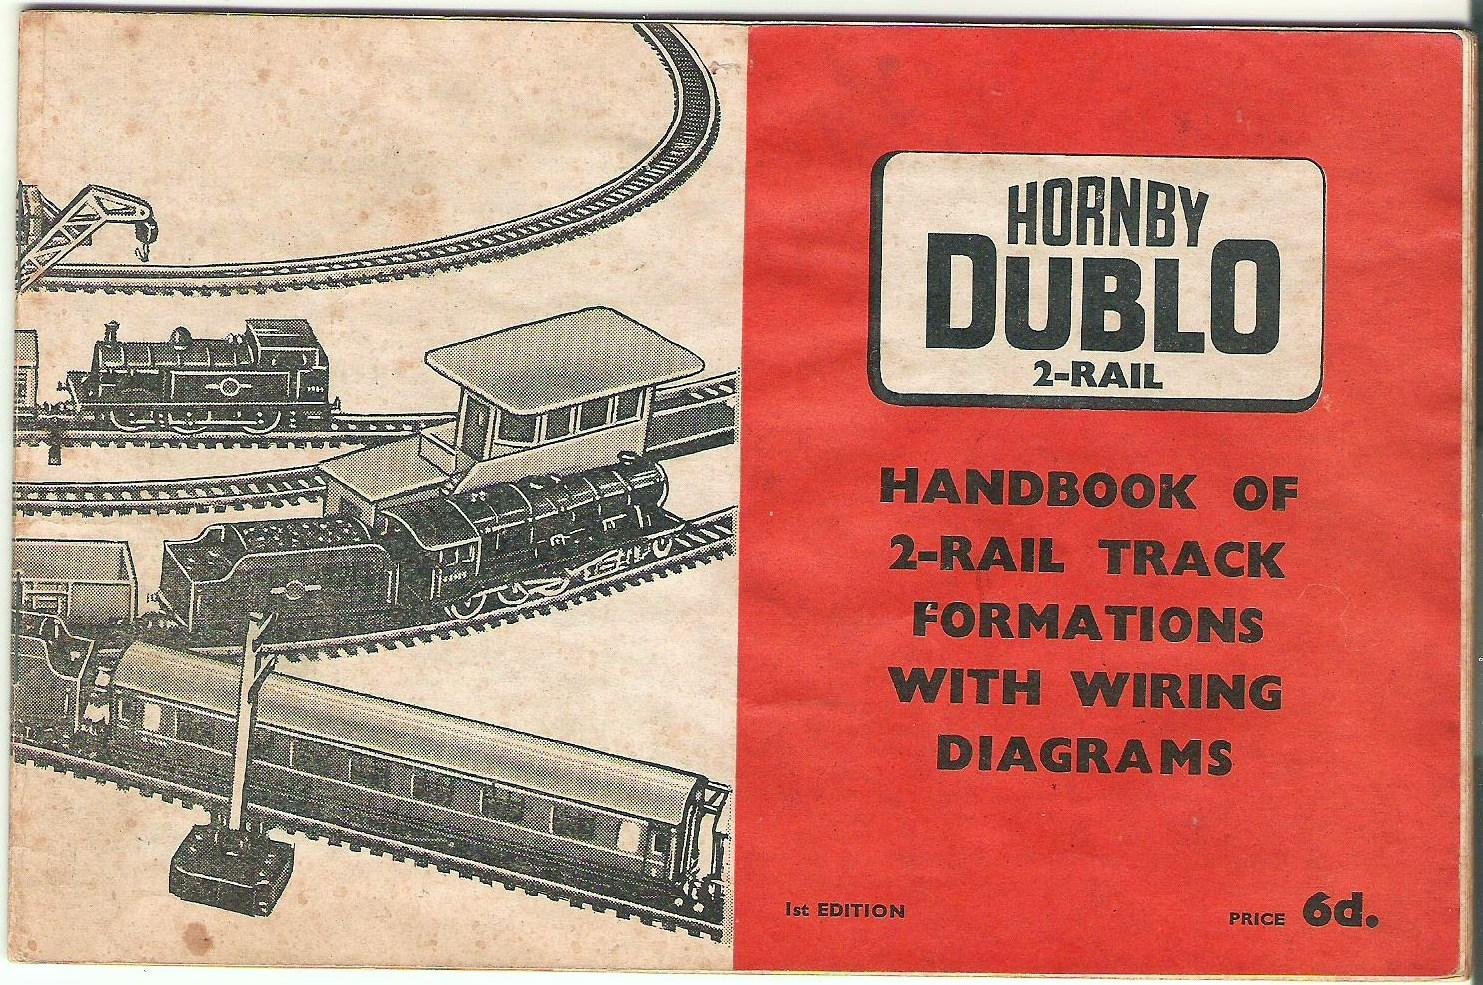 Hornby Dublo 2-rail. Handbook of 2-rail Track Formations with Wiring  Diagrams